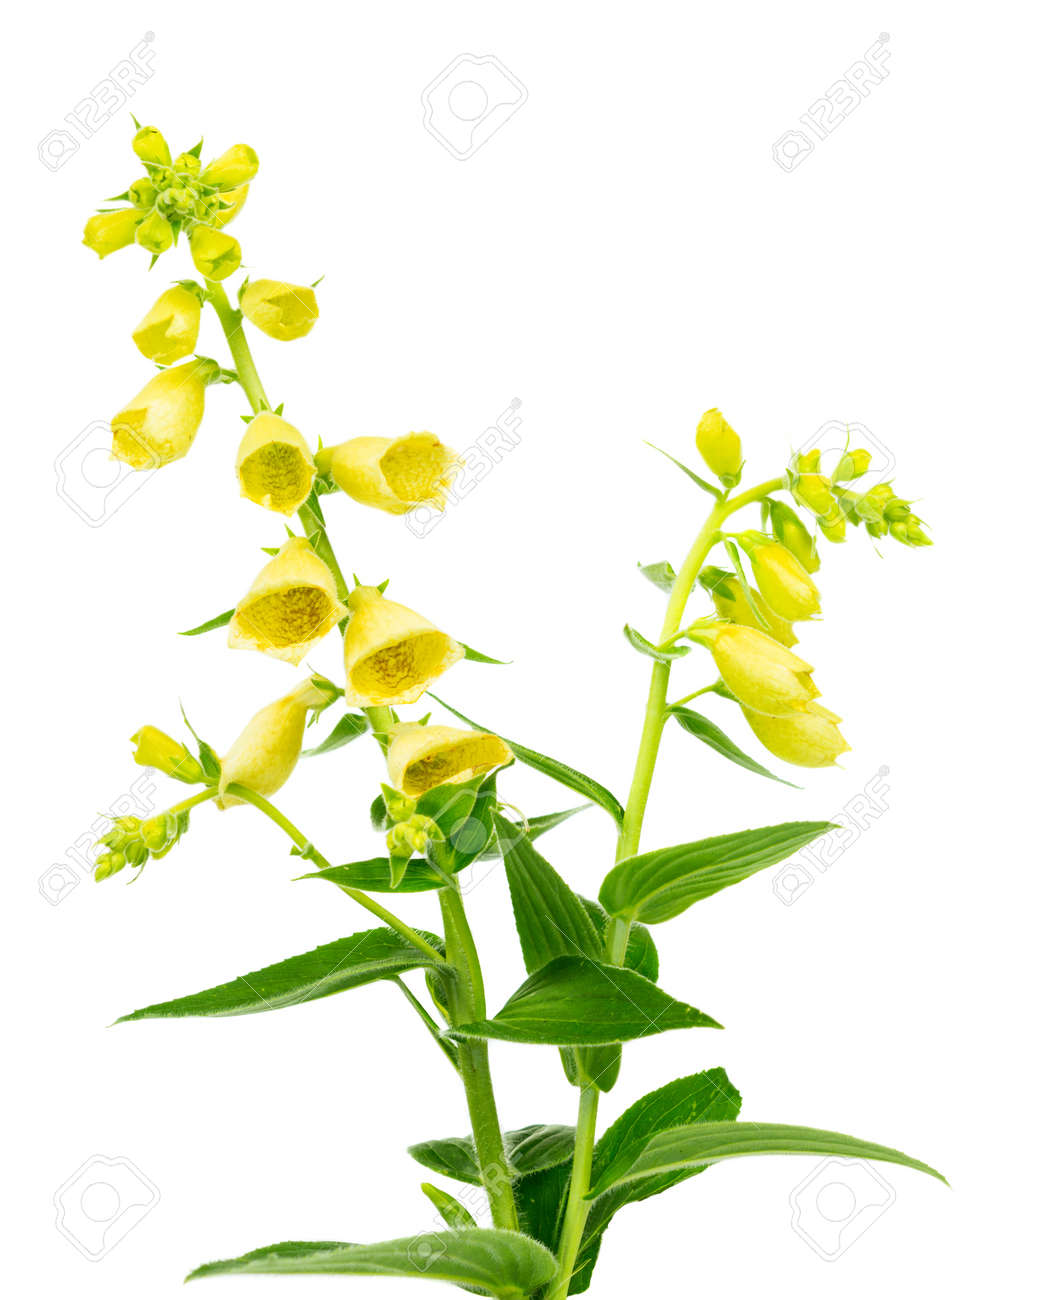 Flowering Foxglove Digitalis Lutea With Colourful Spikes Of